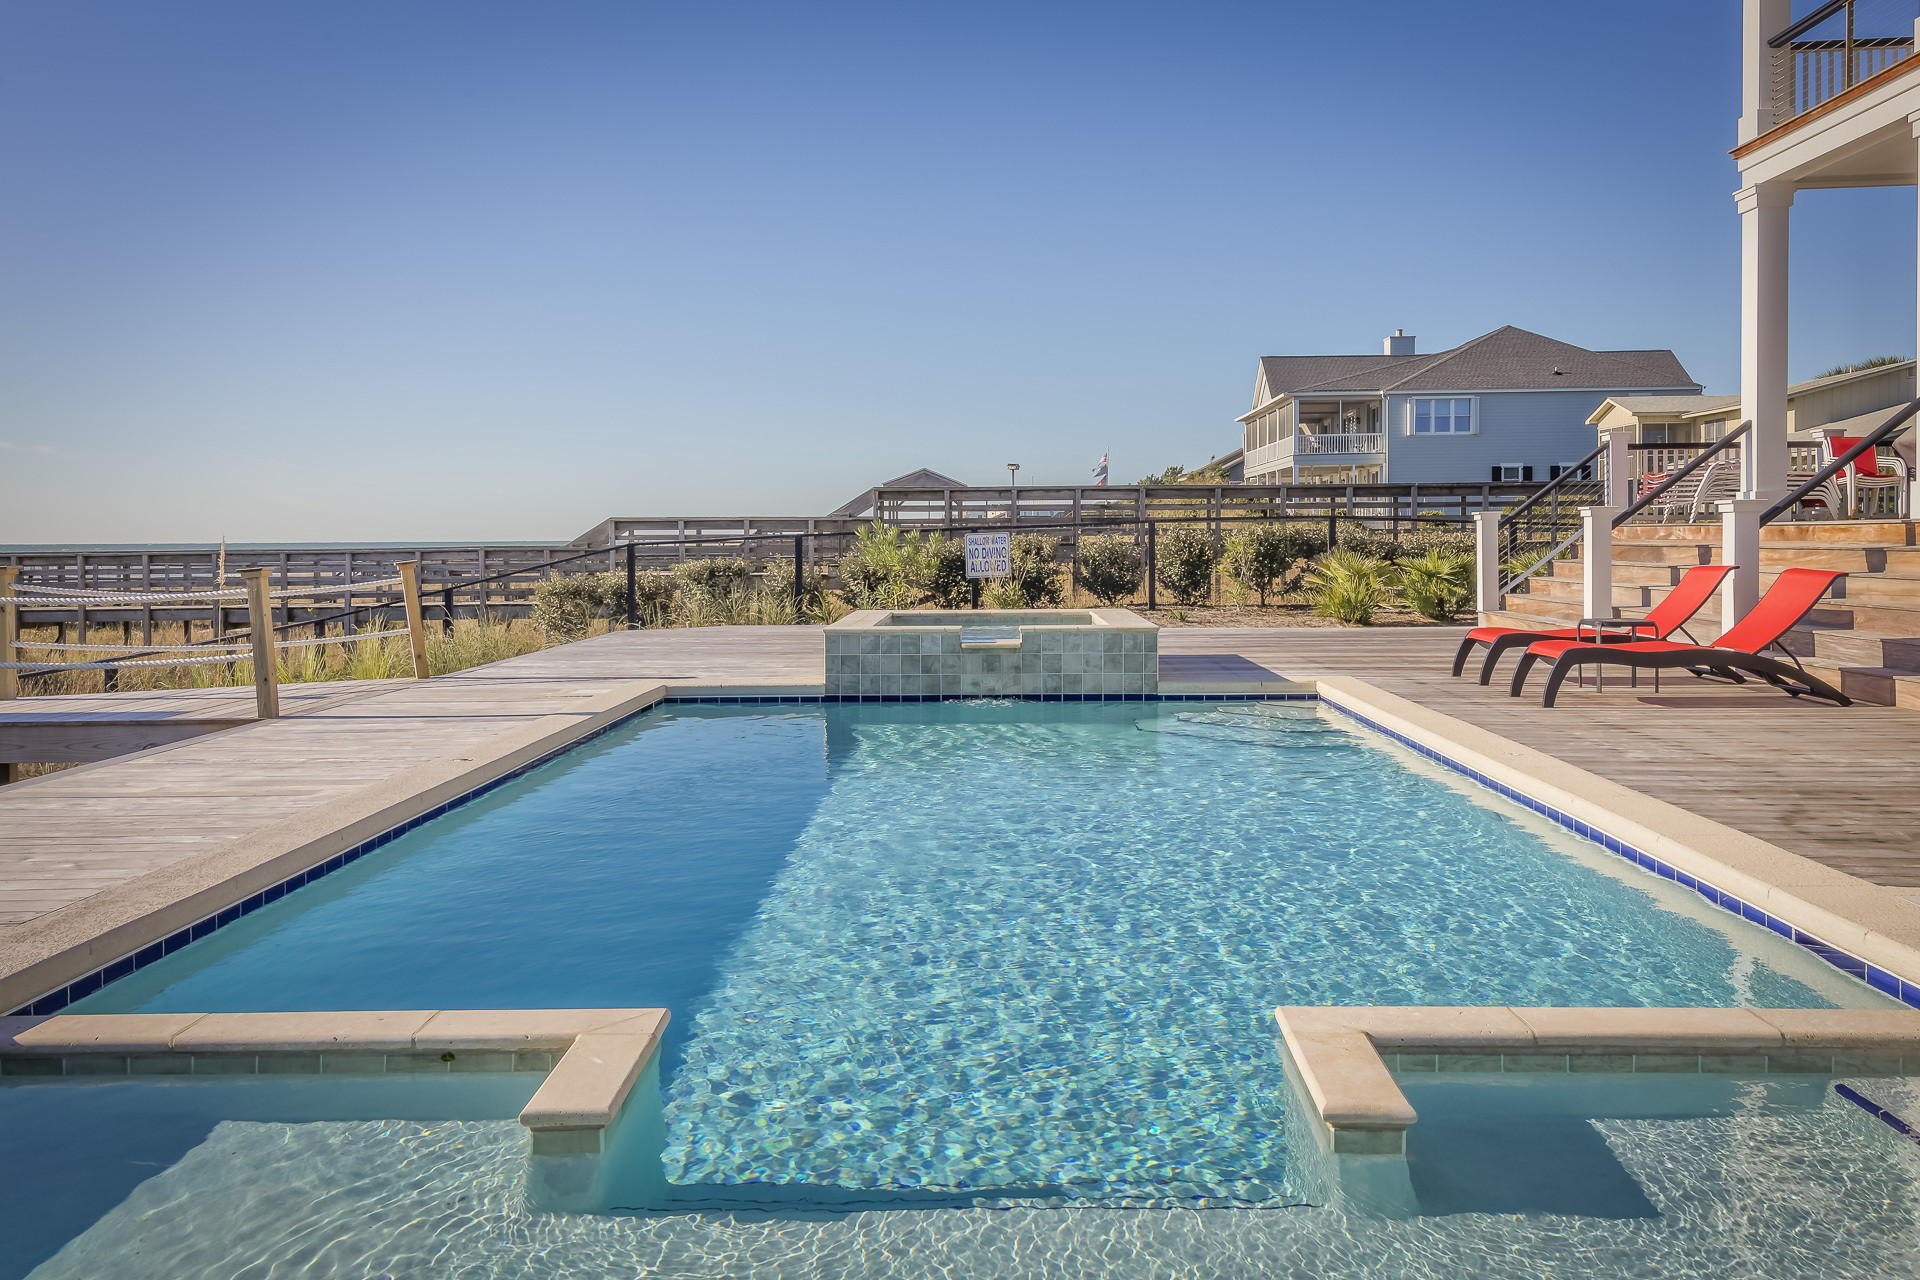 How Do Swimming Pools Affect Real Estate Value By Dannylaurealestate Medium